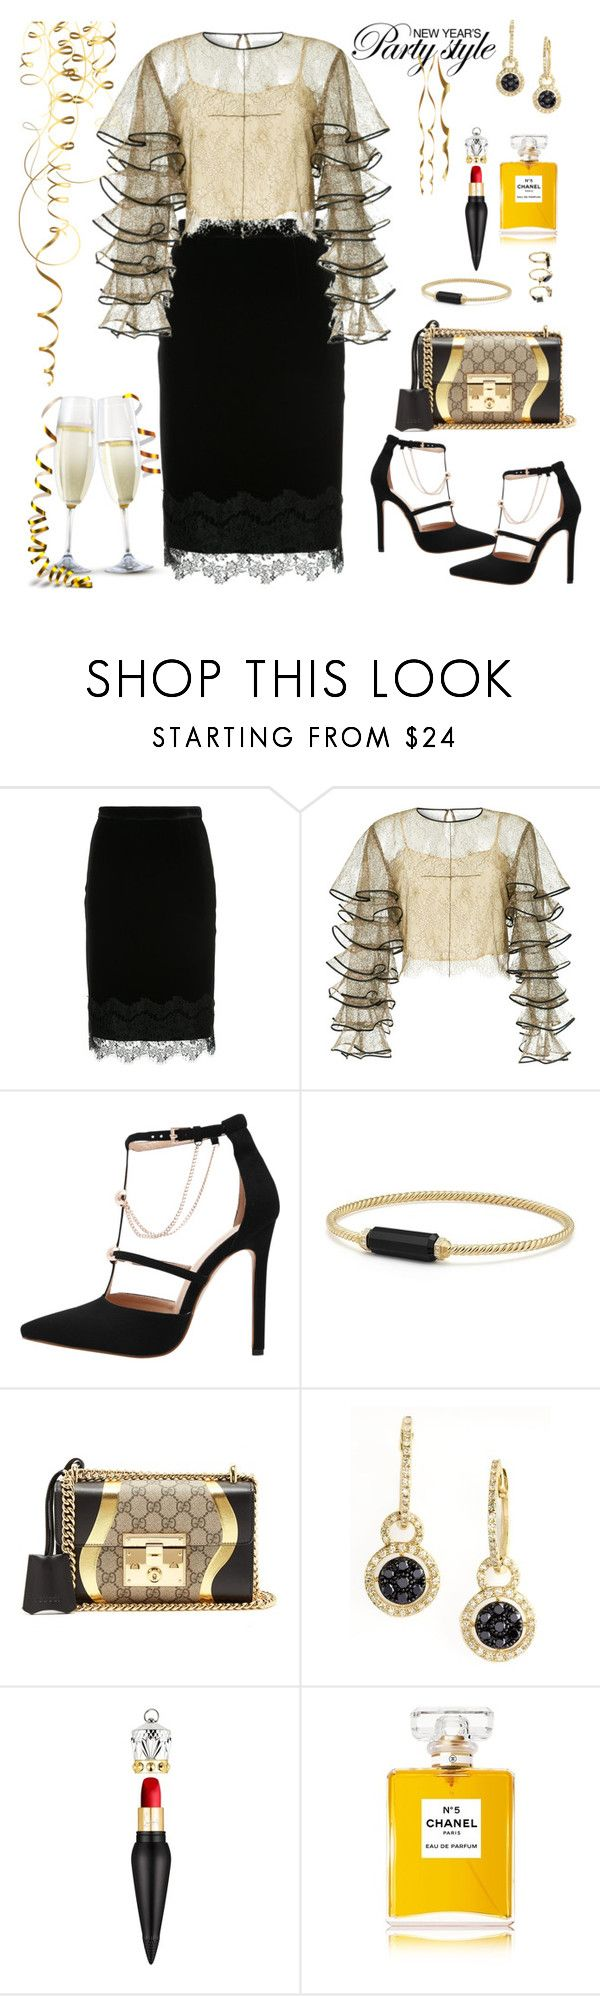 """New Year's Eve"" by ellie366 ❤ liked on Polyvore featuring Loveless, HUISHAN ZHANG, David Yurman, Gucci, Effy Jewelry, Christian Louboutin, Chanel, Noir Jewelry, Nuevo and lace"